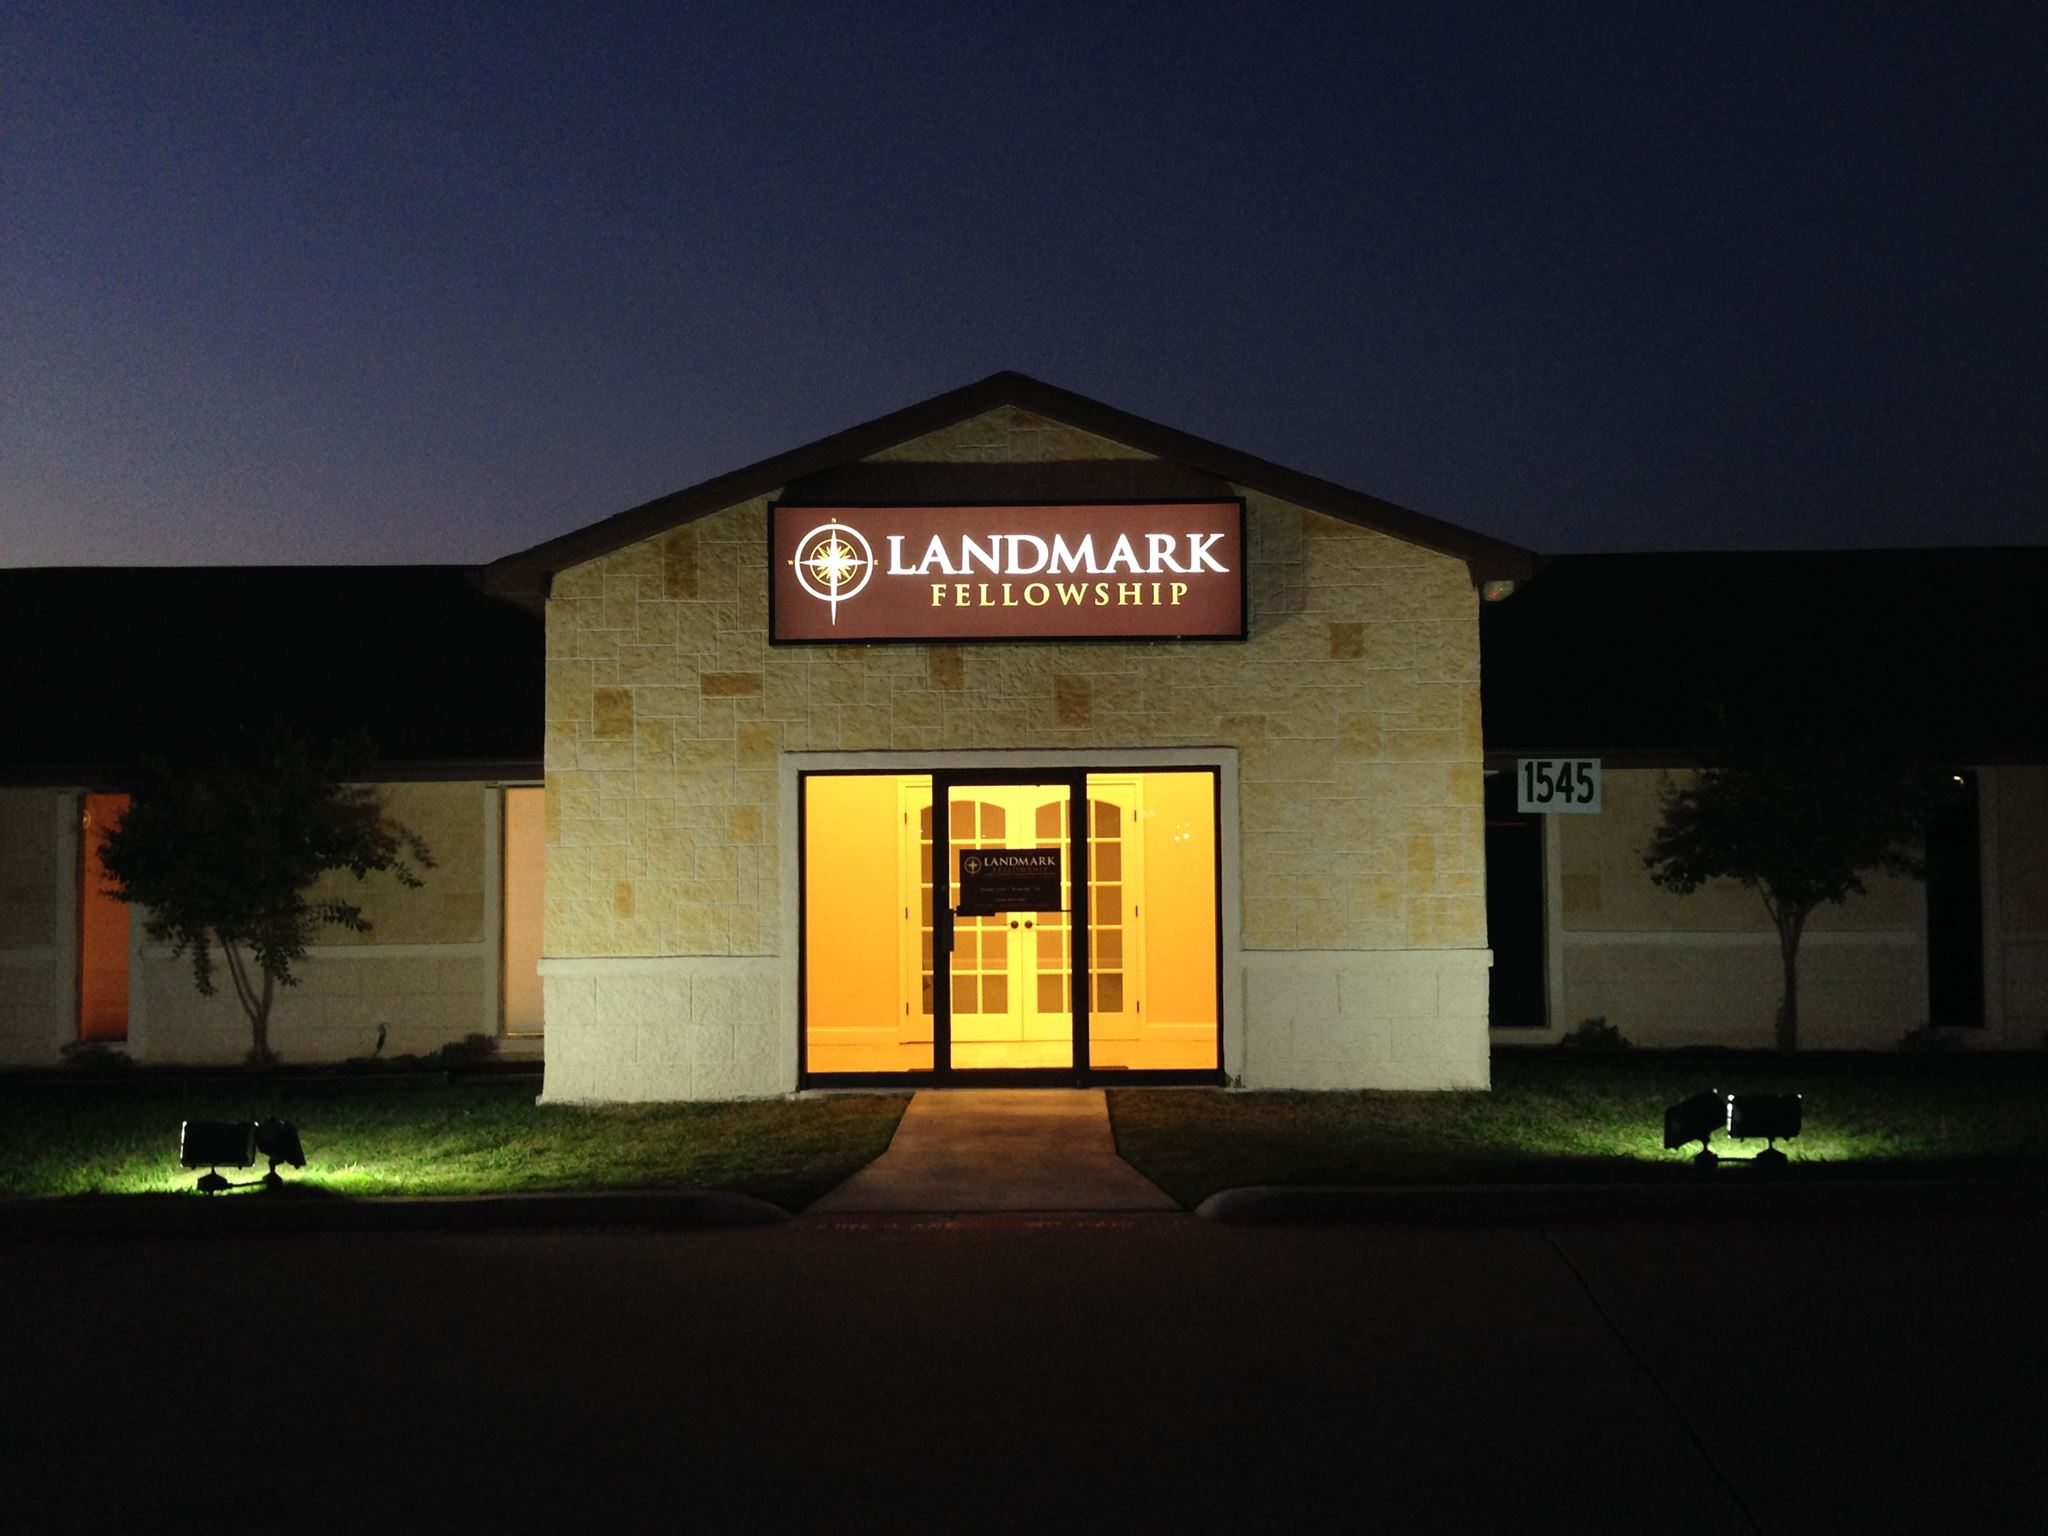 Landmark Fellowship celebrates five years of worship in Rockwall